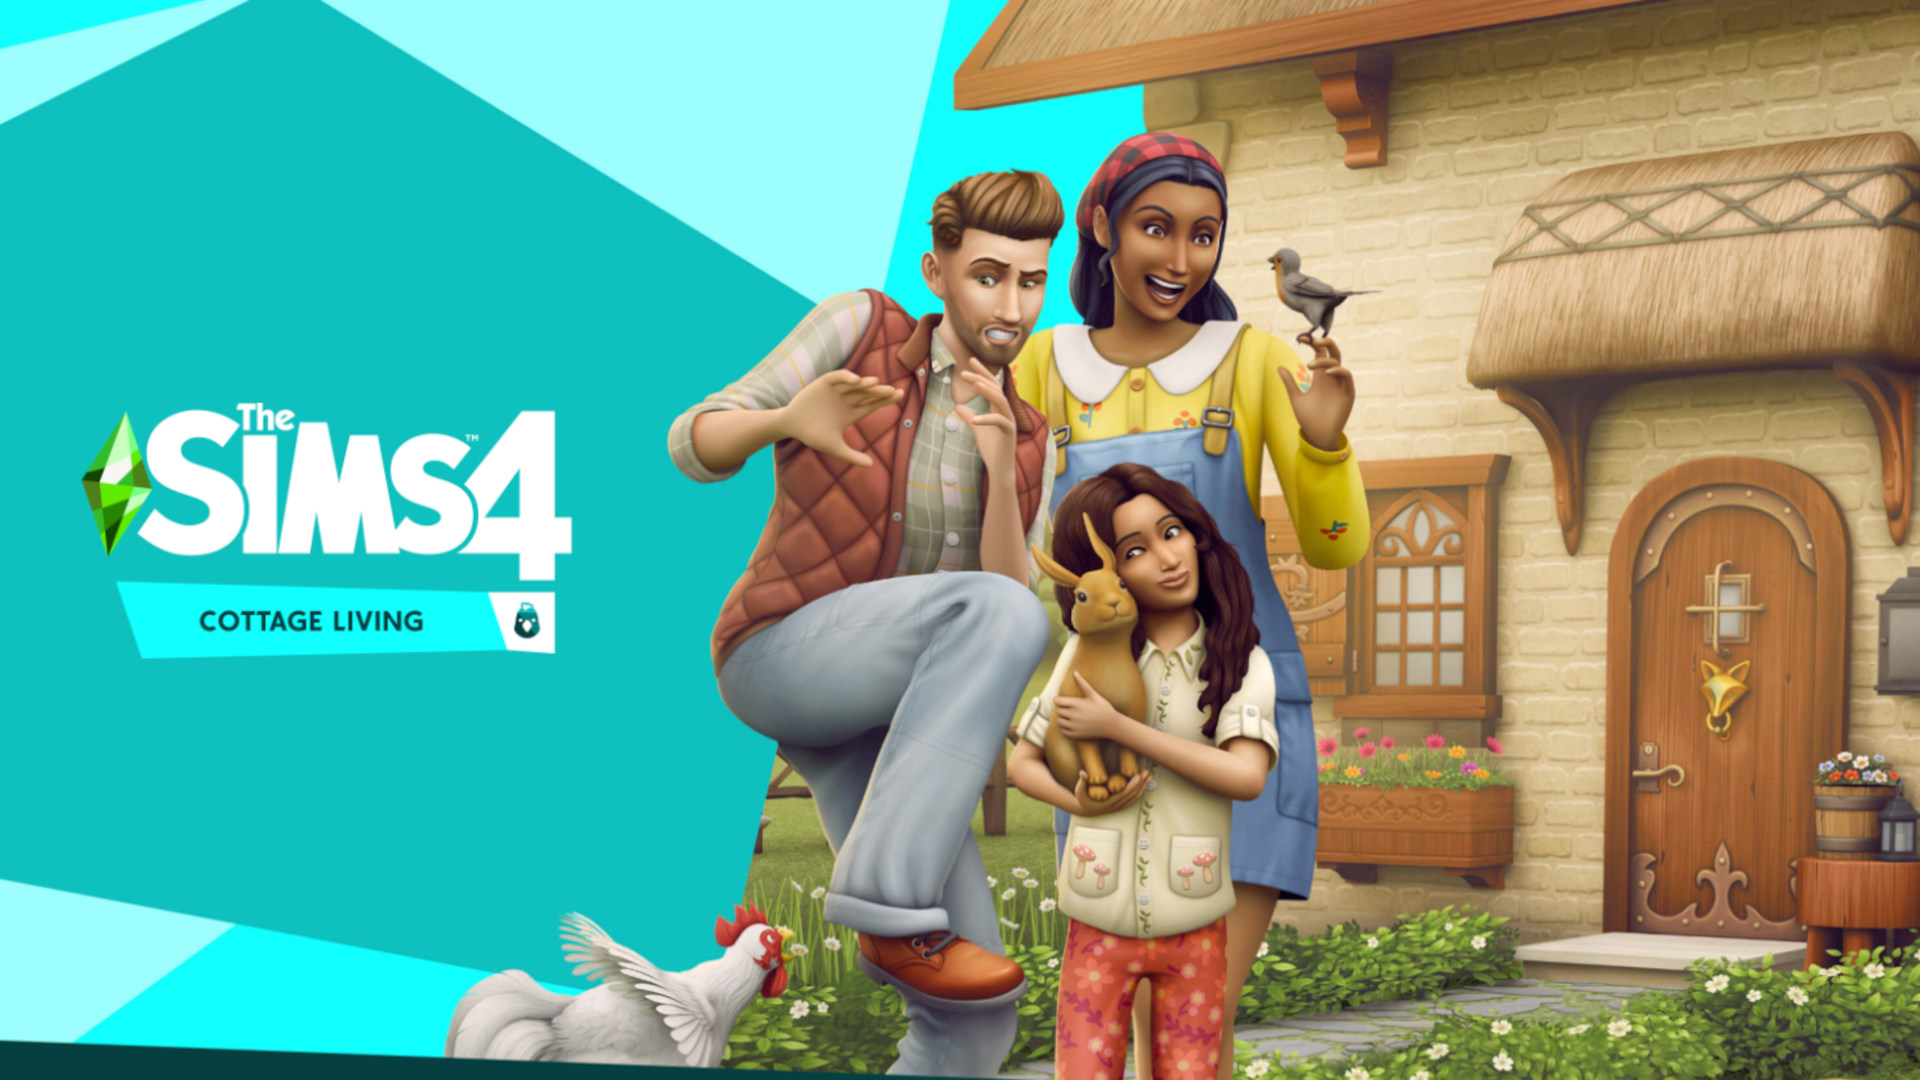 The Sims 4: How to Get Flour in Cottage Living